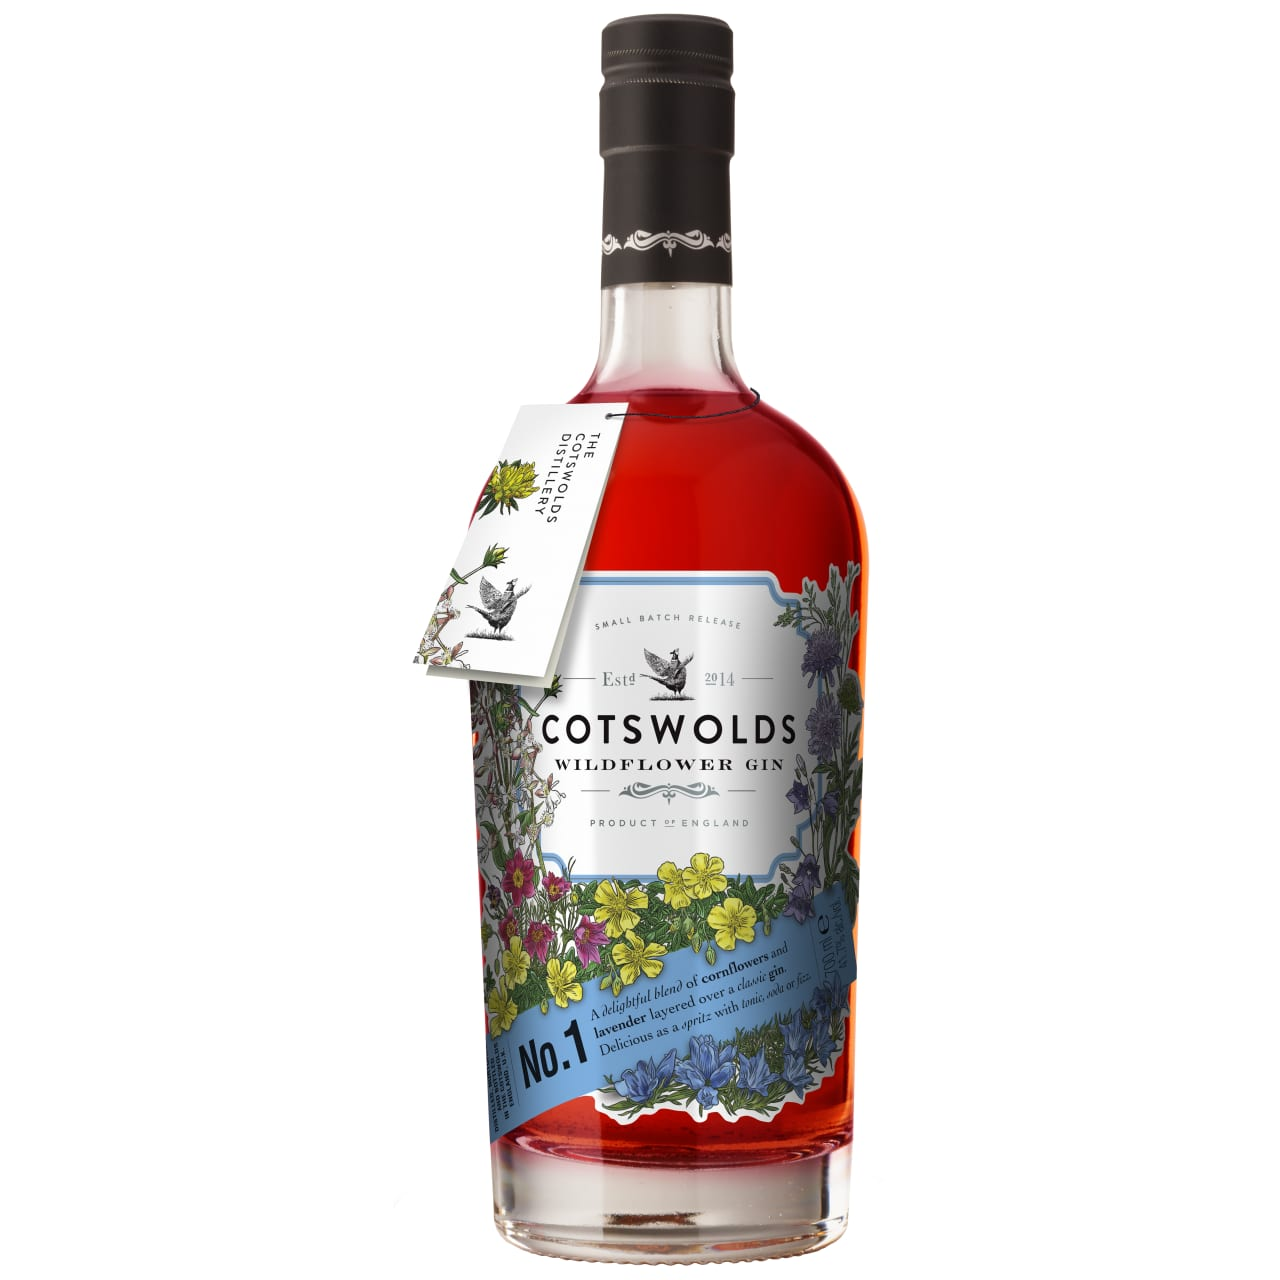 Product Image - Cotswolds Wildflower Gin No. 1